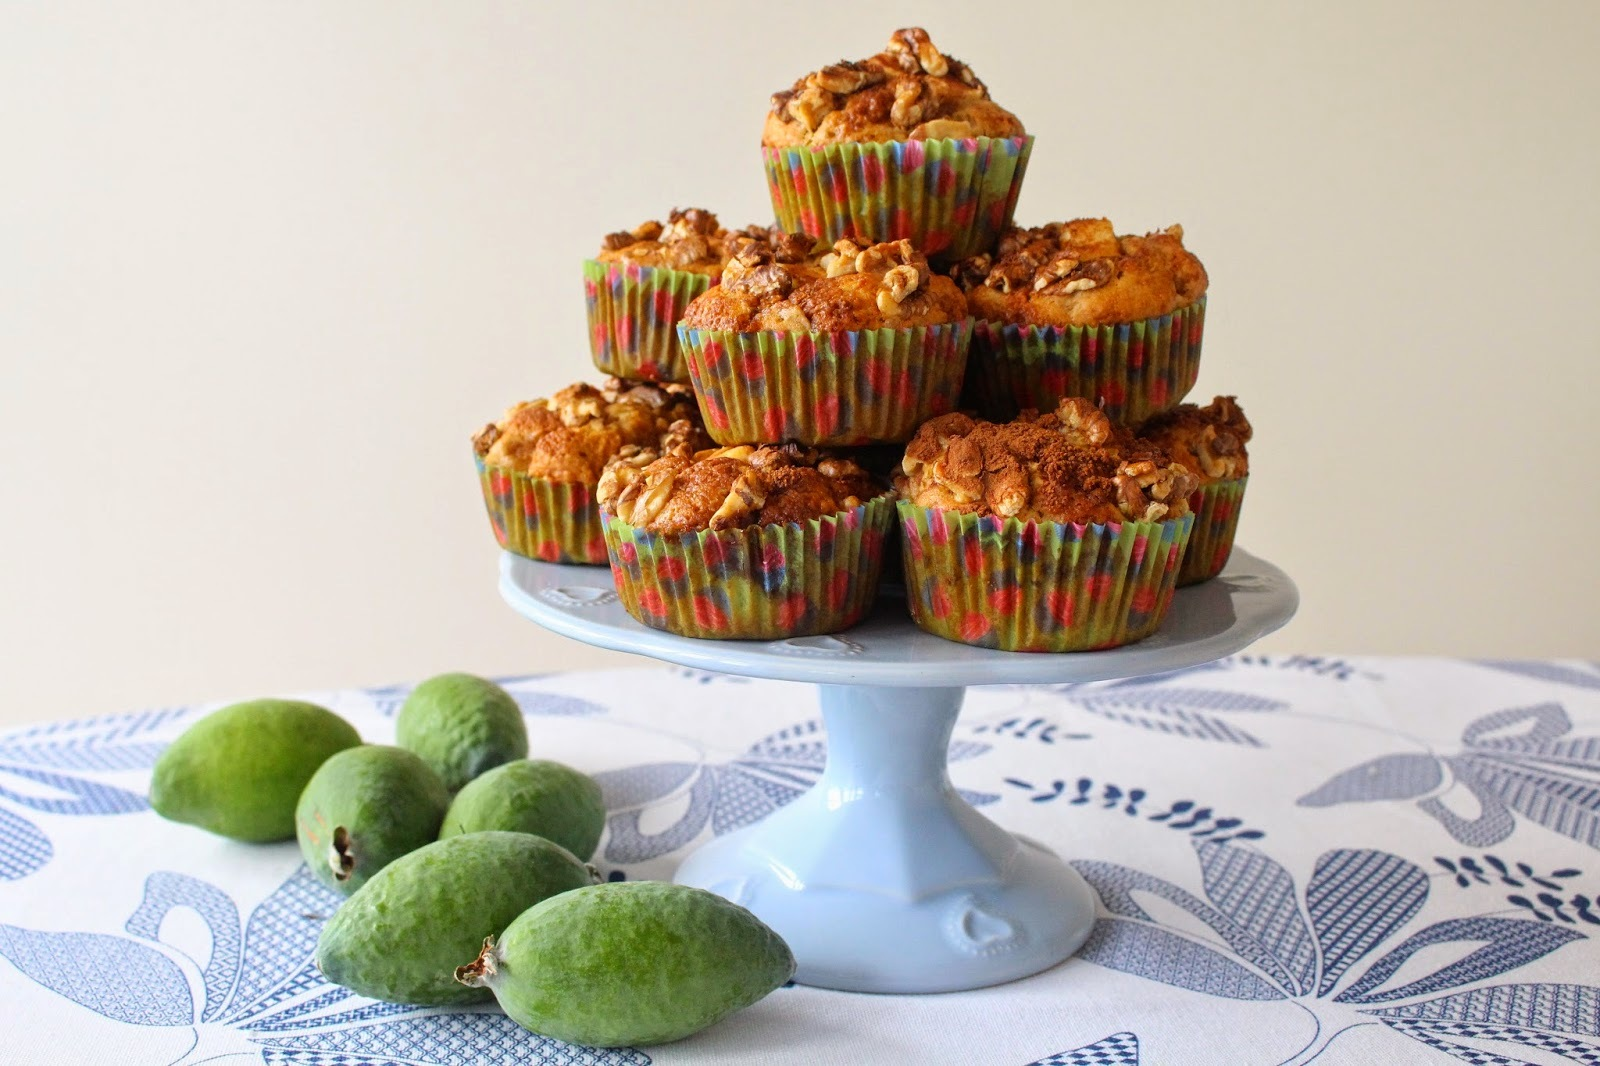 Feijoa Muffins ~ with Walnut & Cinnamon Sugar Topping